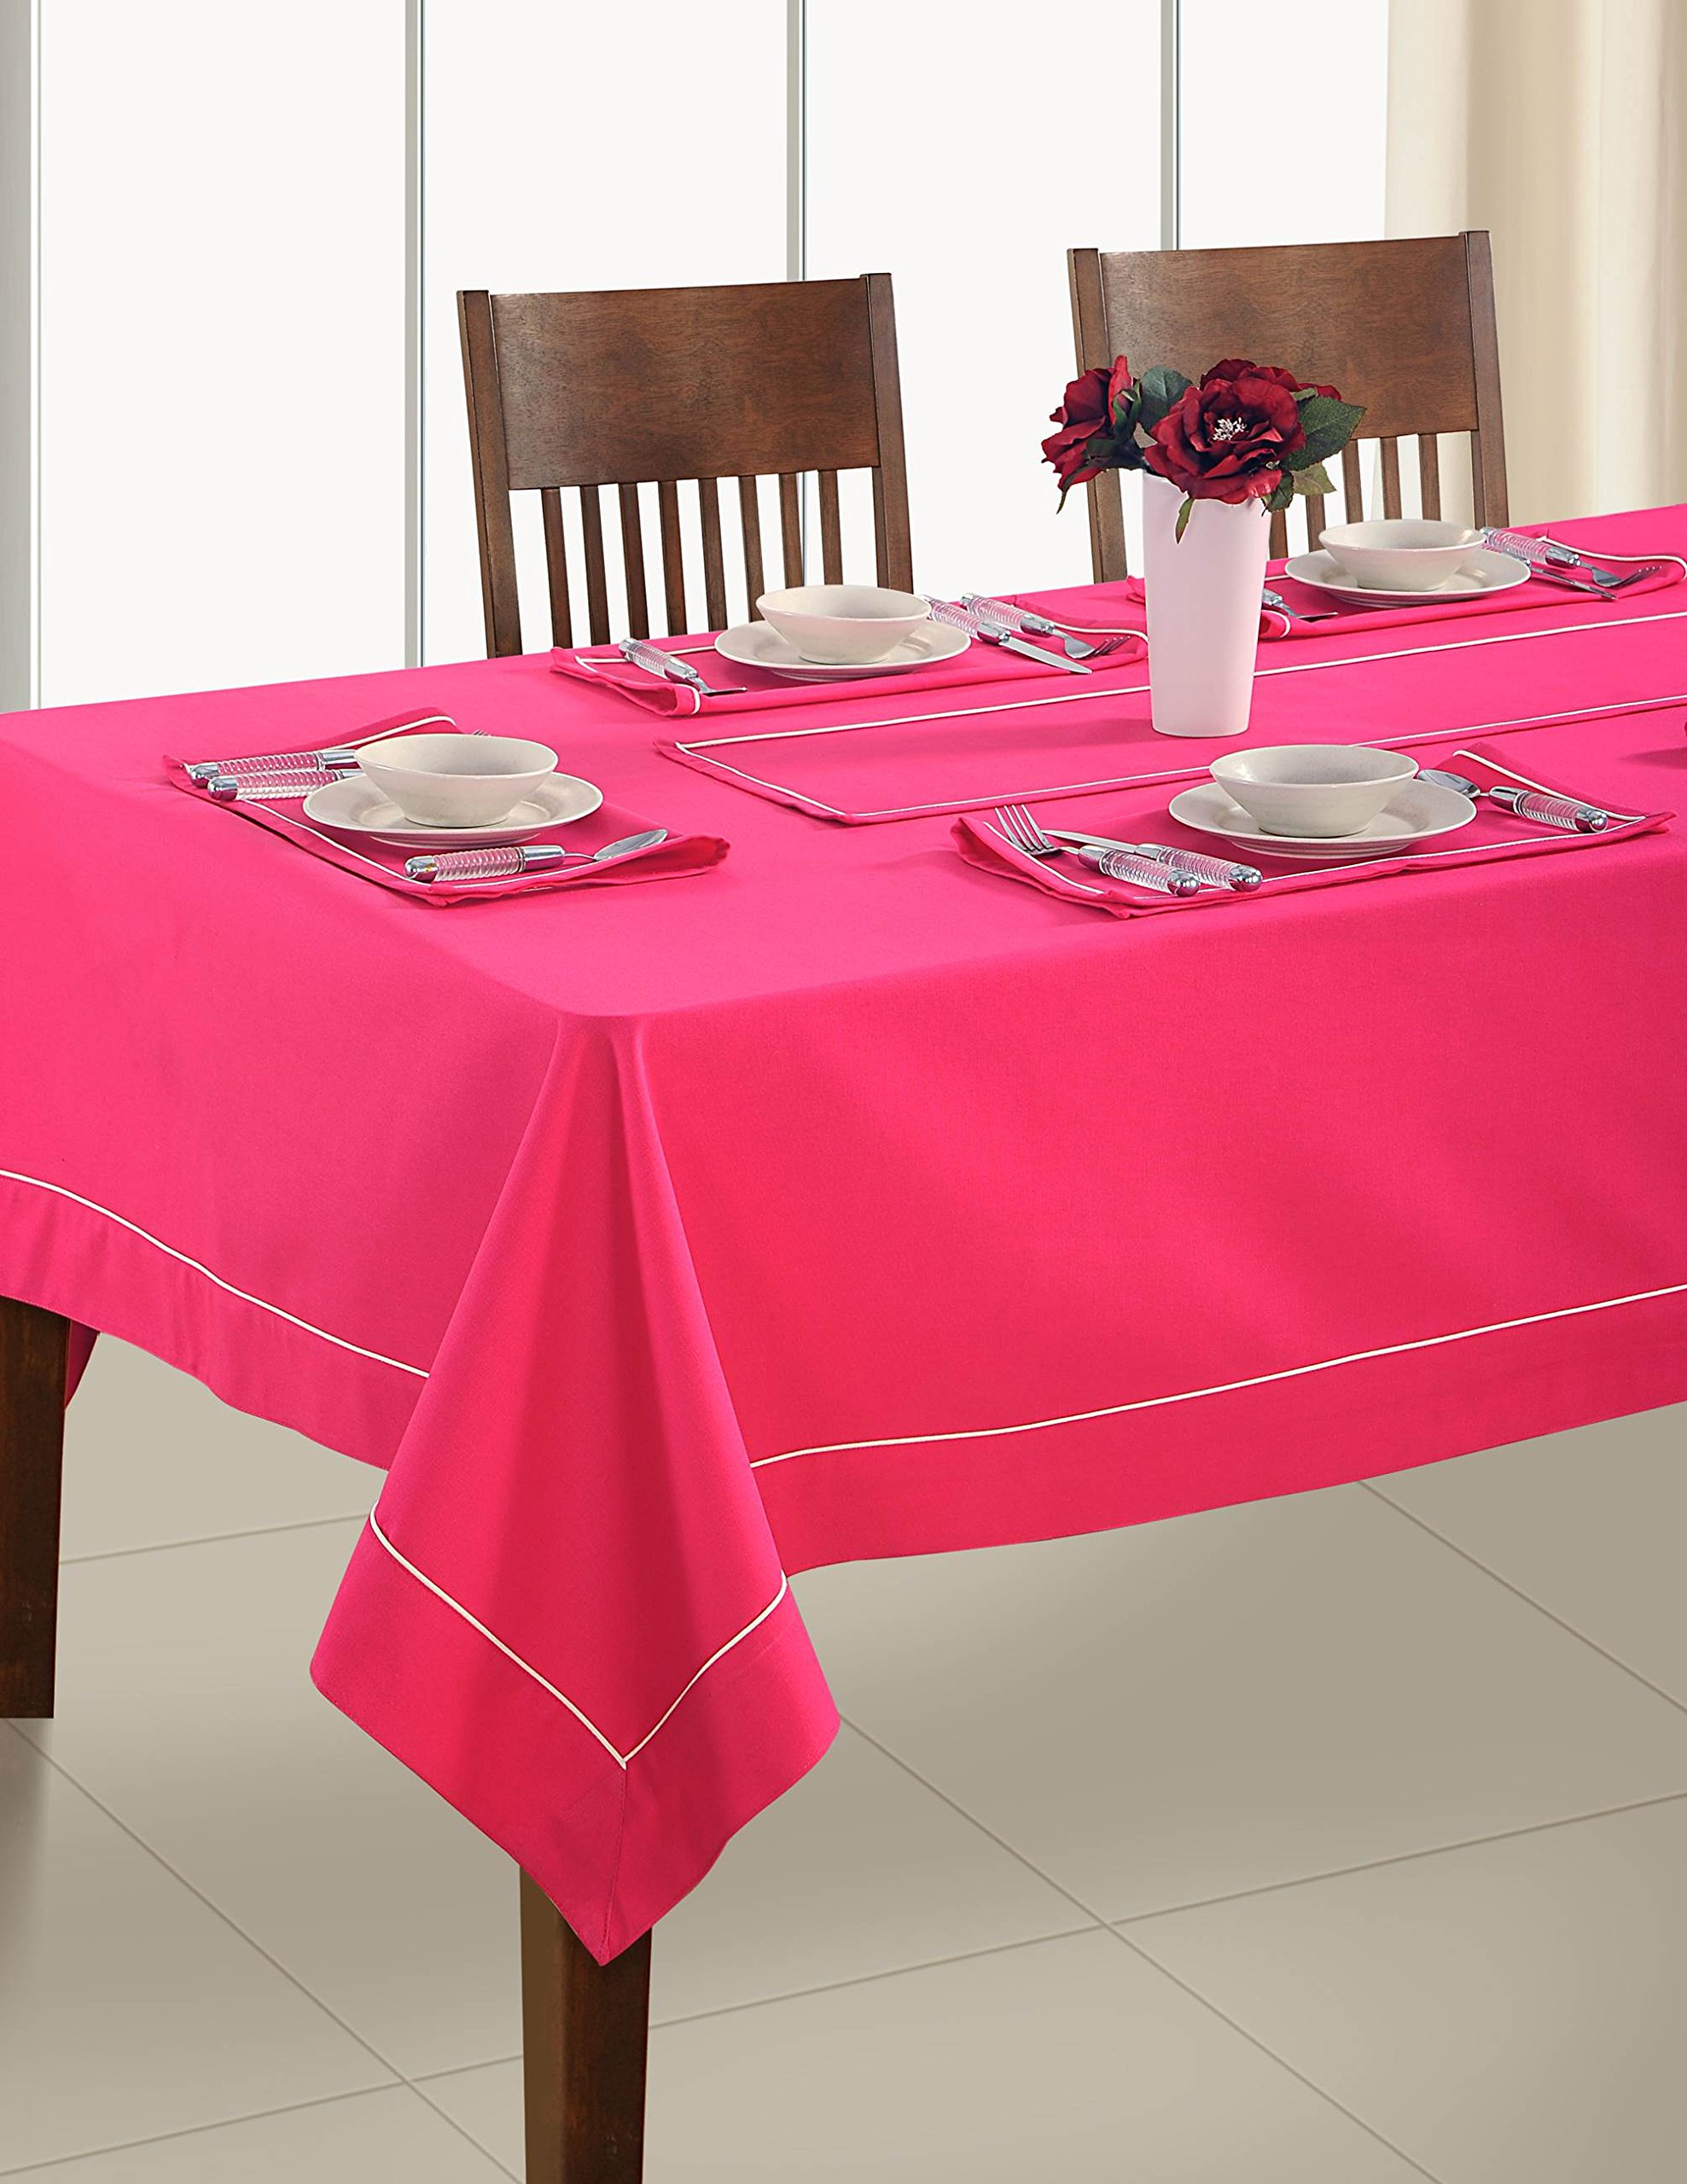 Handmade Fuschia Pink Table Linen Set for 6 Seat Table: Includes Rectangle Tablecloth, 6 Napkins & Table Runner - Premium Cotton Fabric 60 X 90 Inch